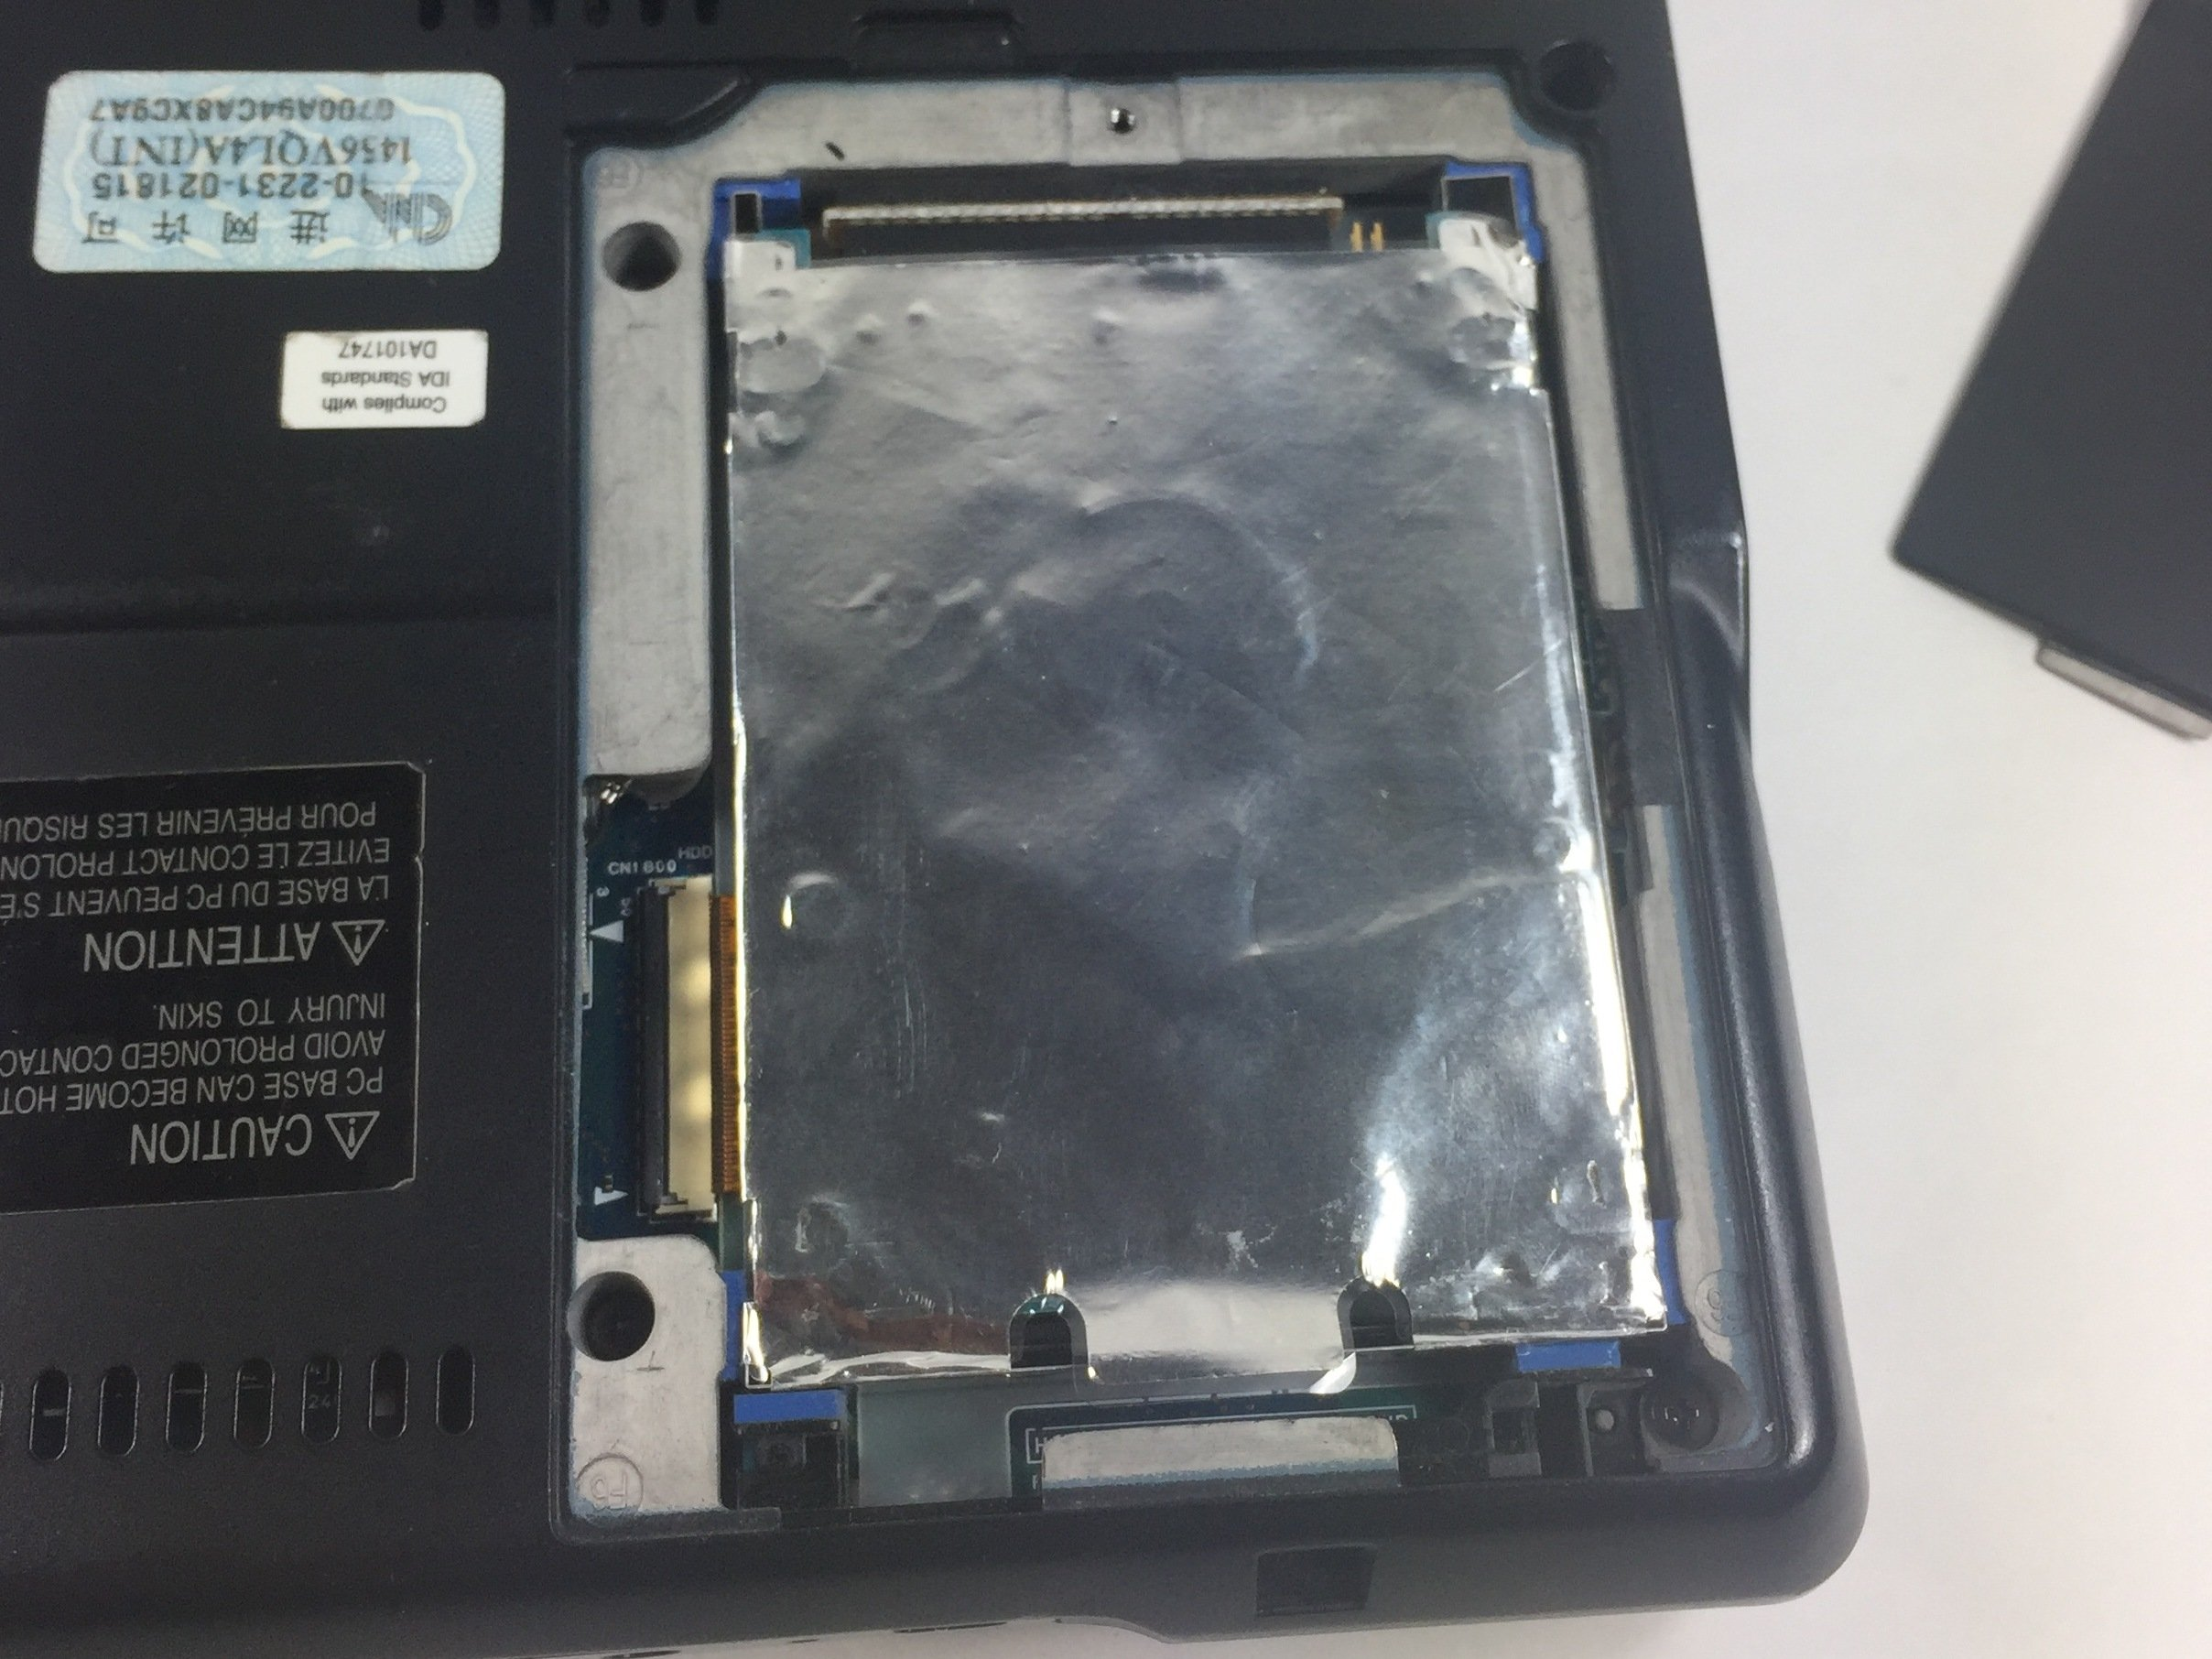 Toshiba Satellite R15-S829 Hard Drive Replacement - iFixit Repair Guide